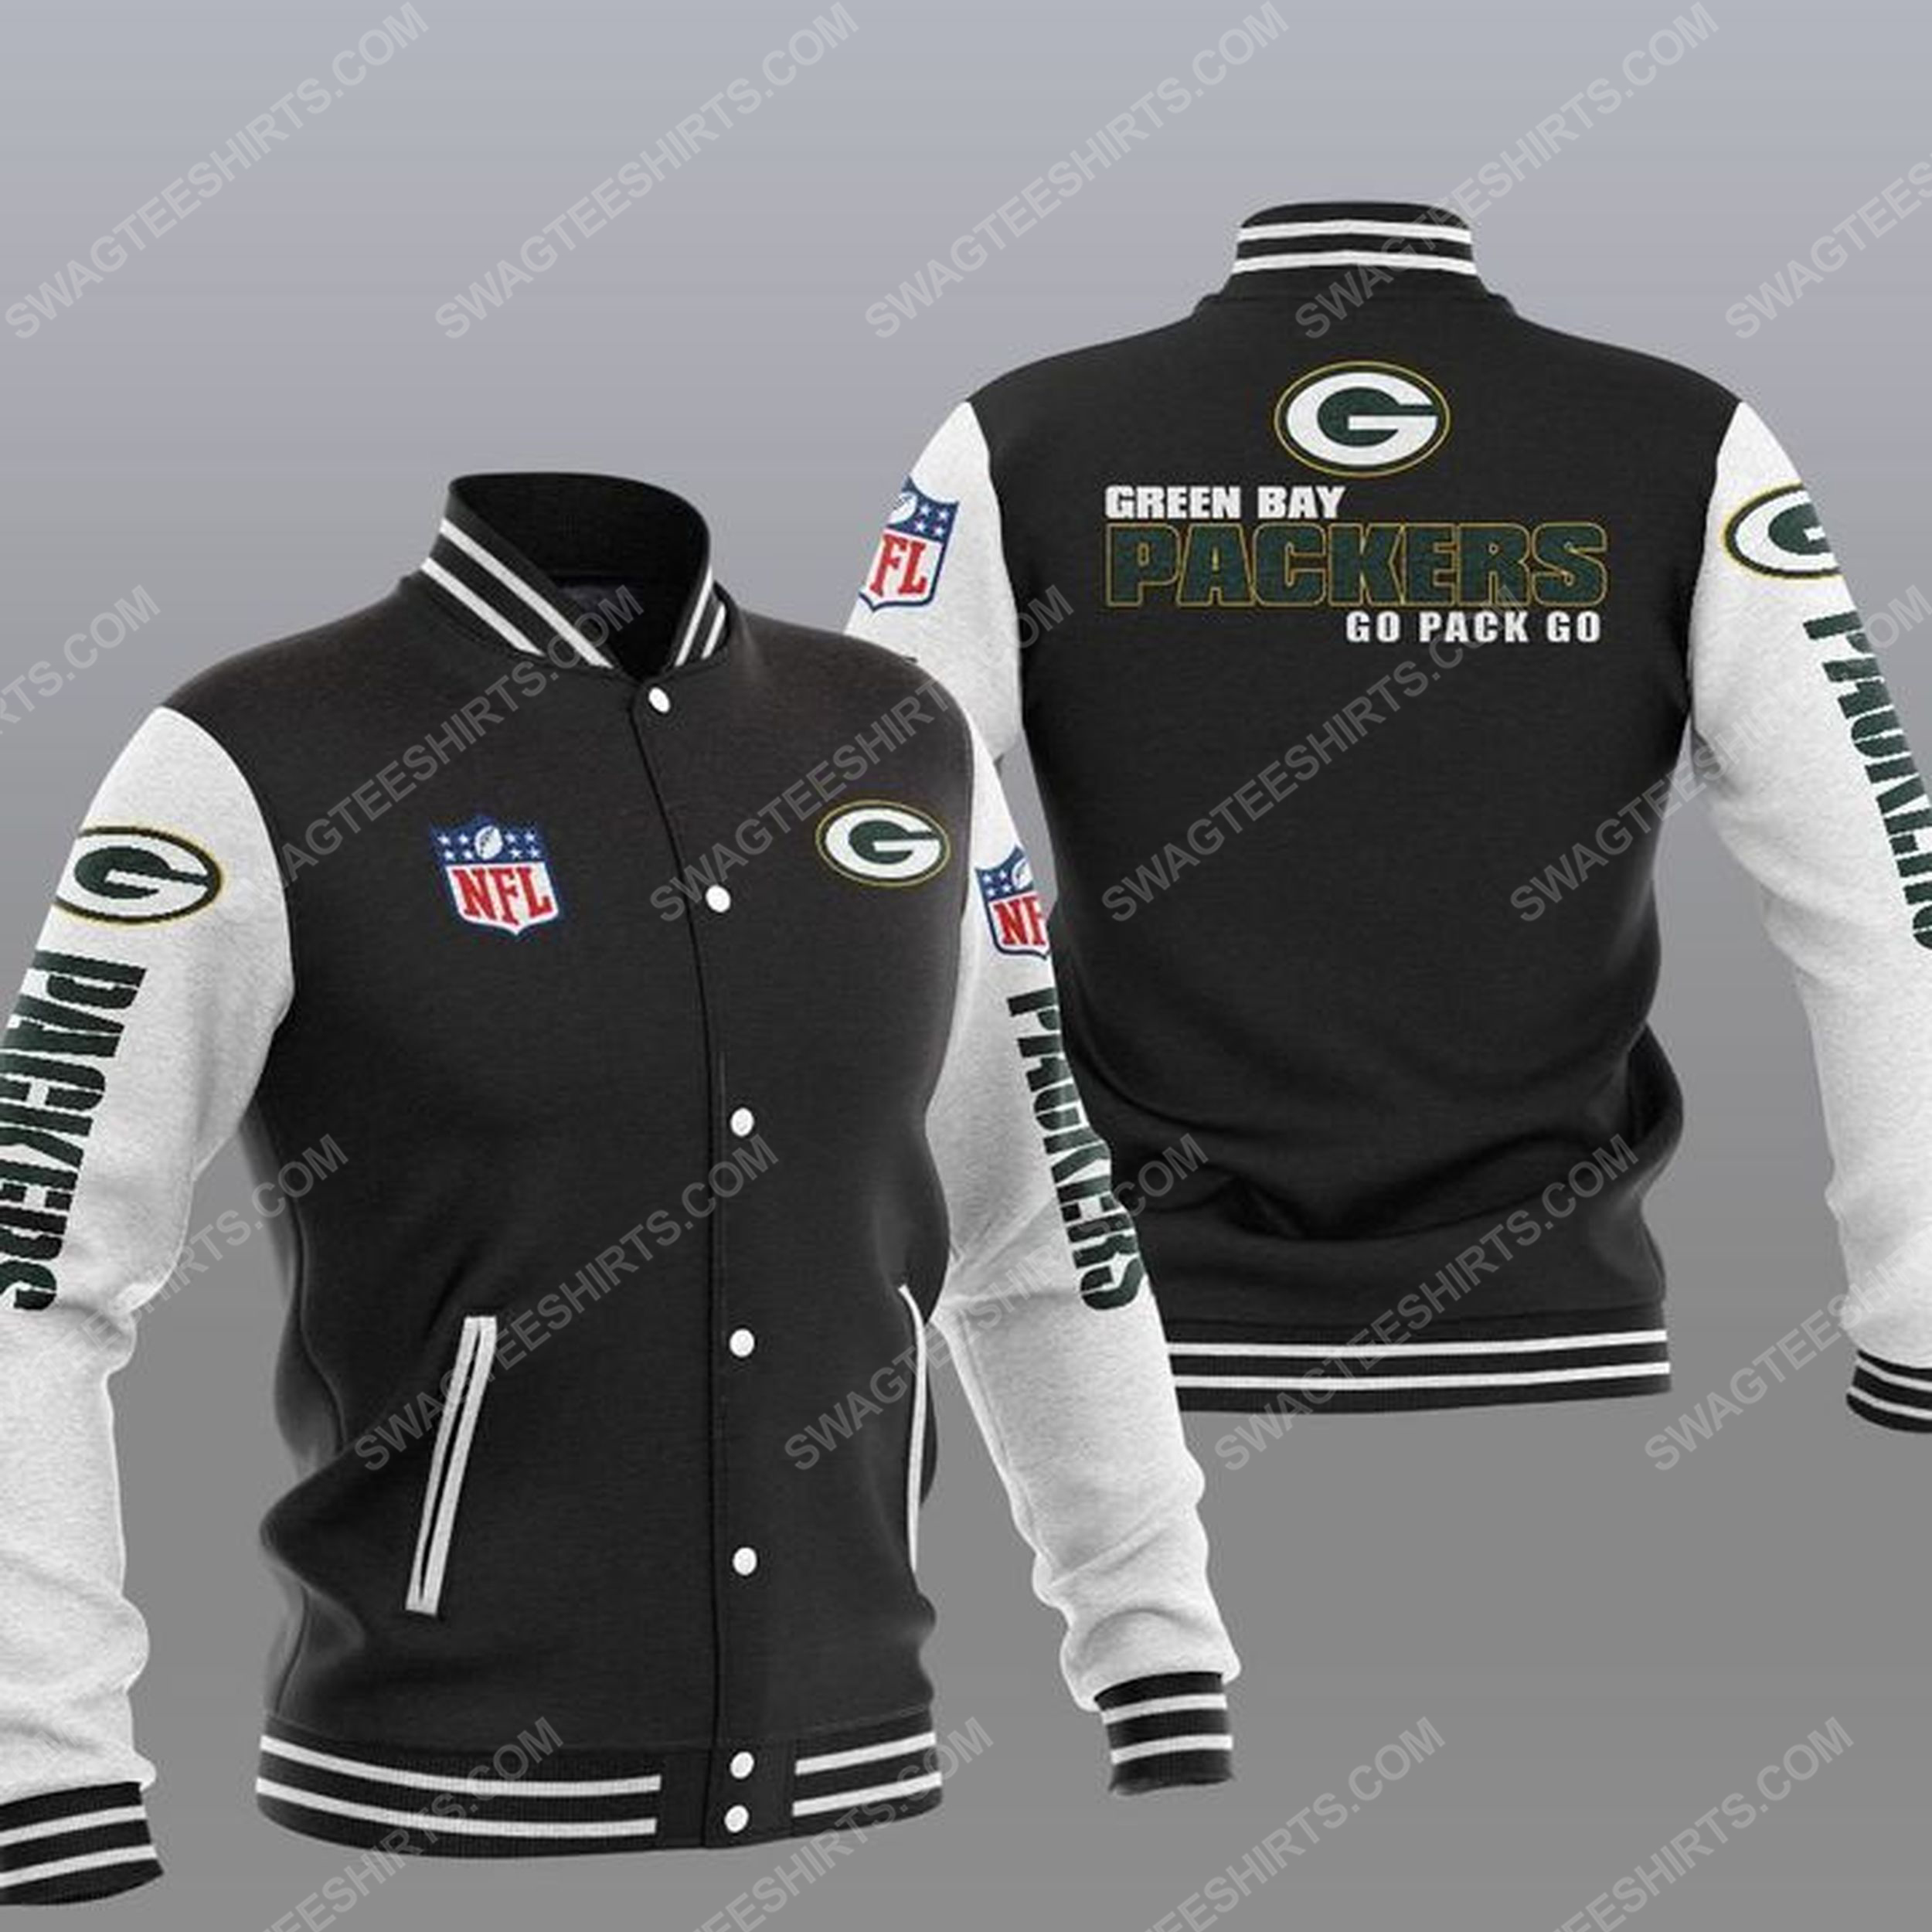 The green bay packers nfl all over print baseball jacket - black 1